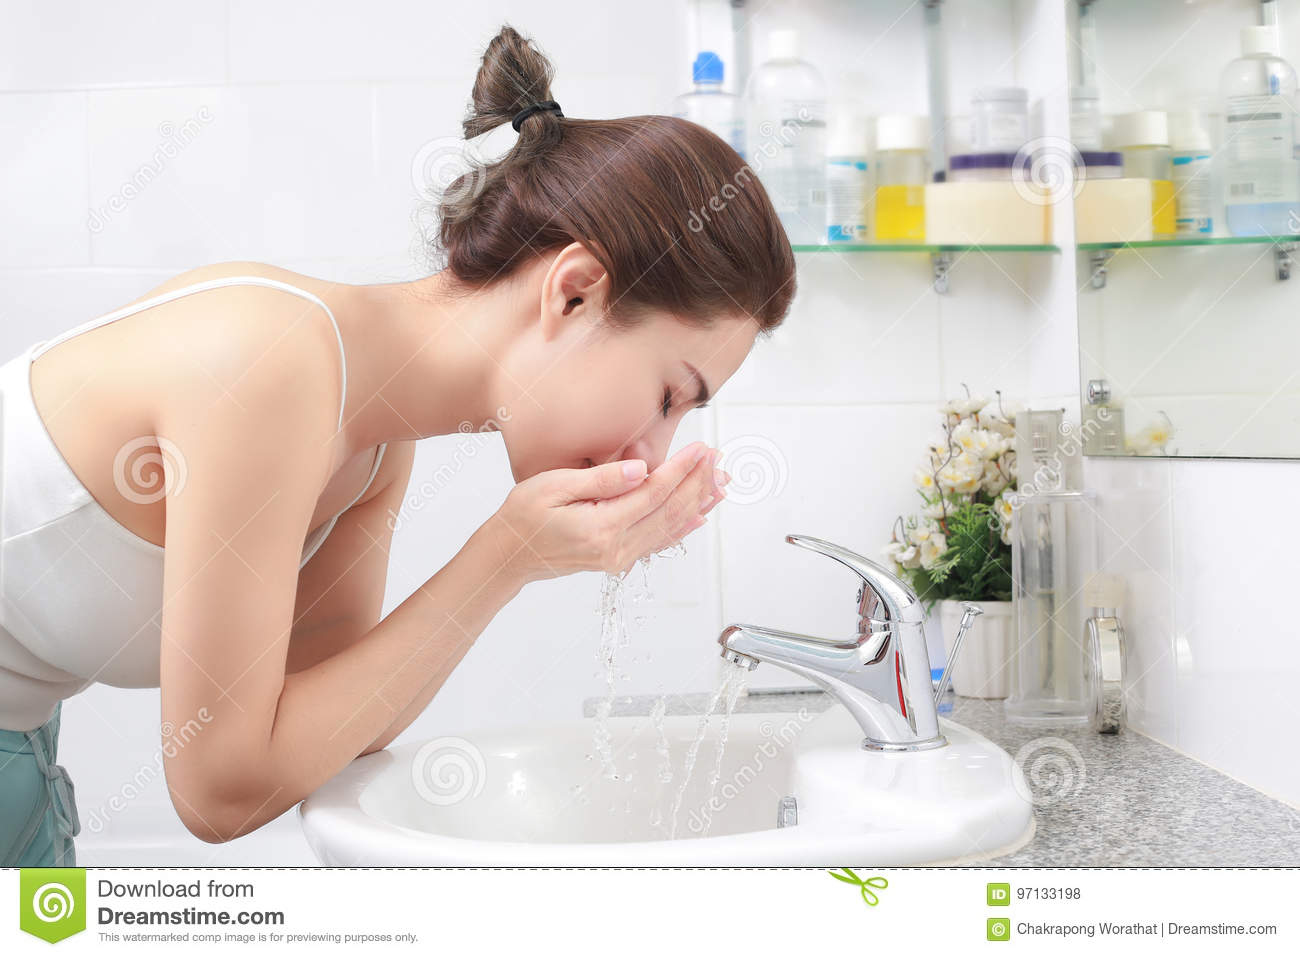 Woman washing her face with water above bathroom sink.